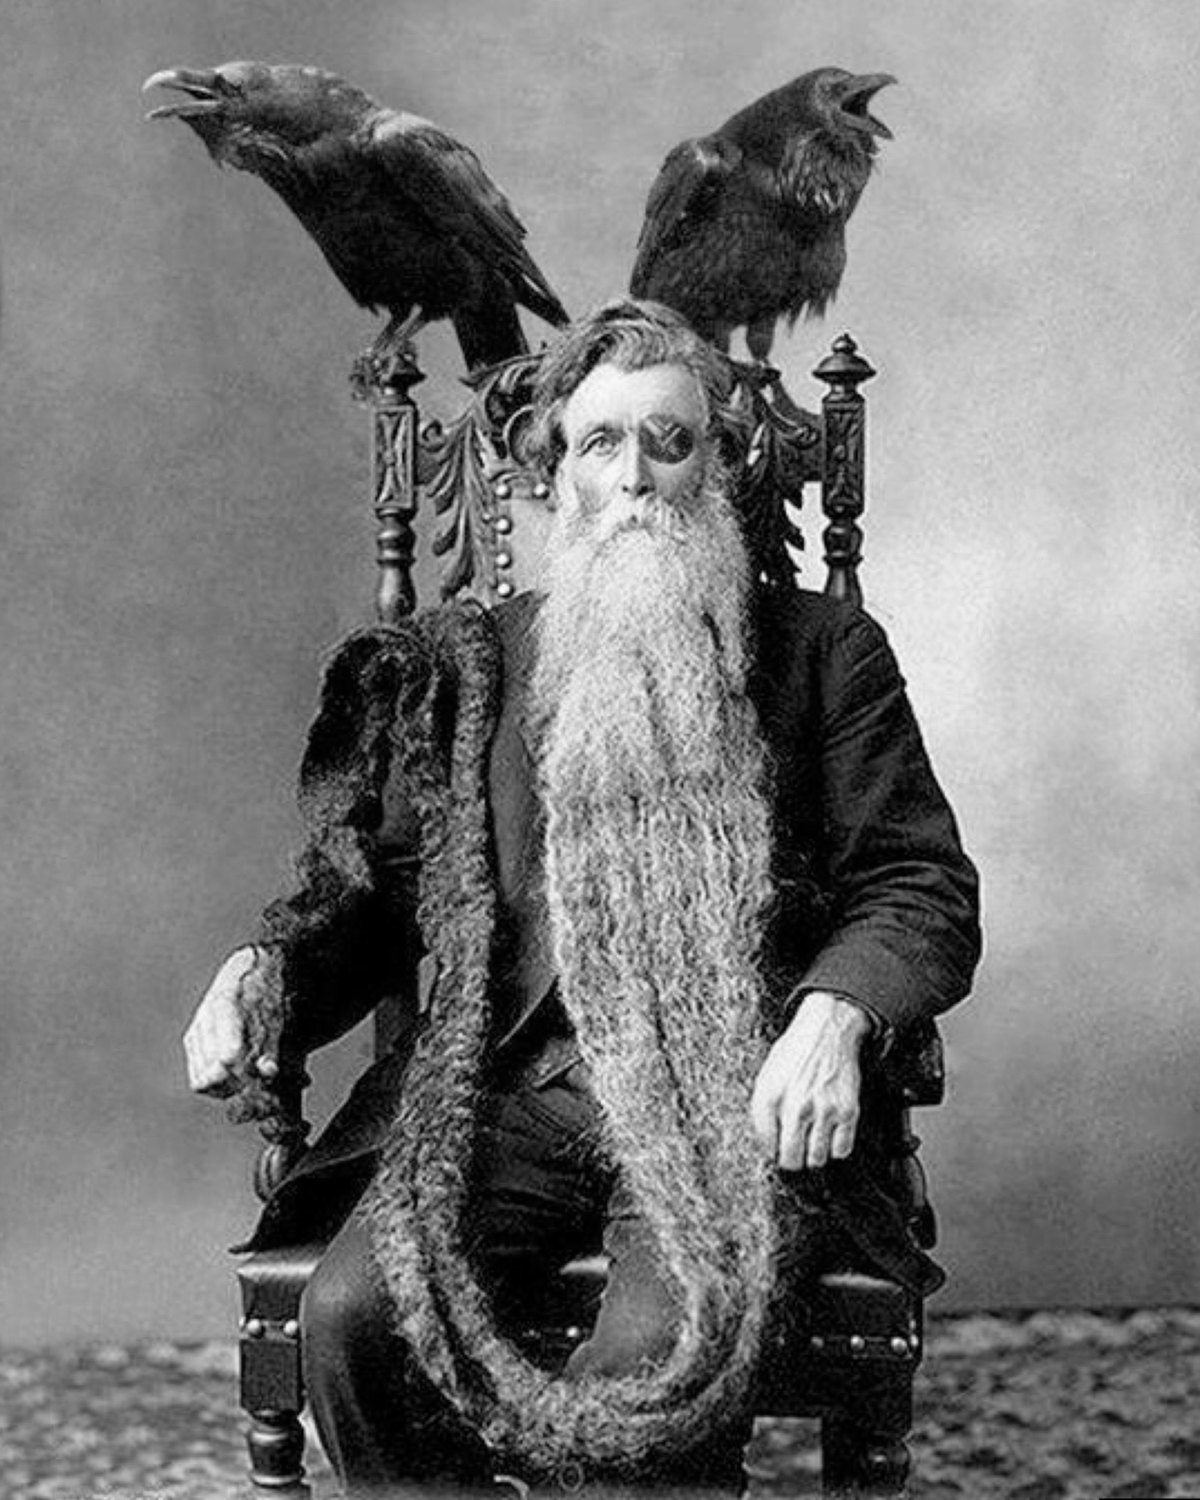 Odin barbu homme long plus longue barbe insolite photographie - Barbe longue homme ...